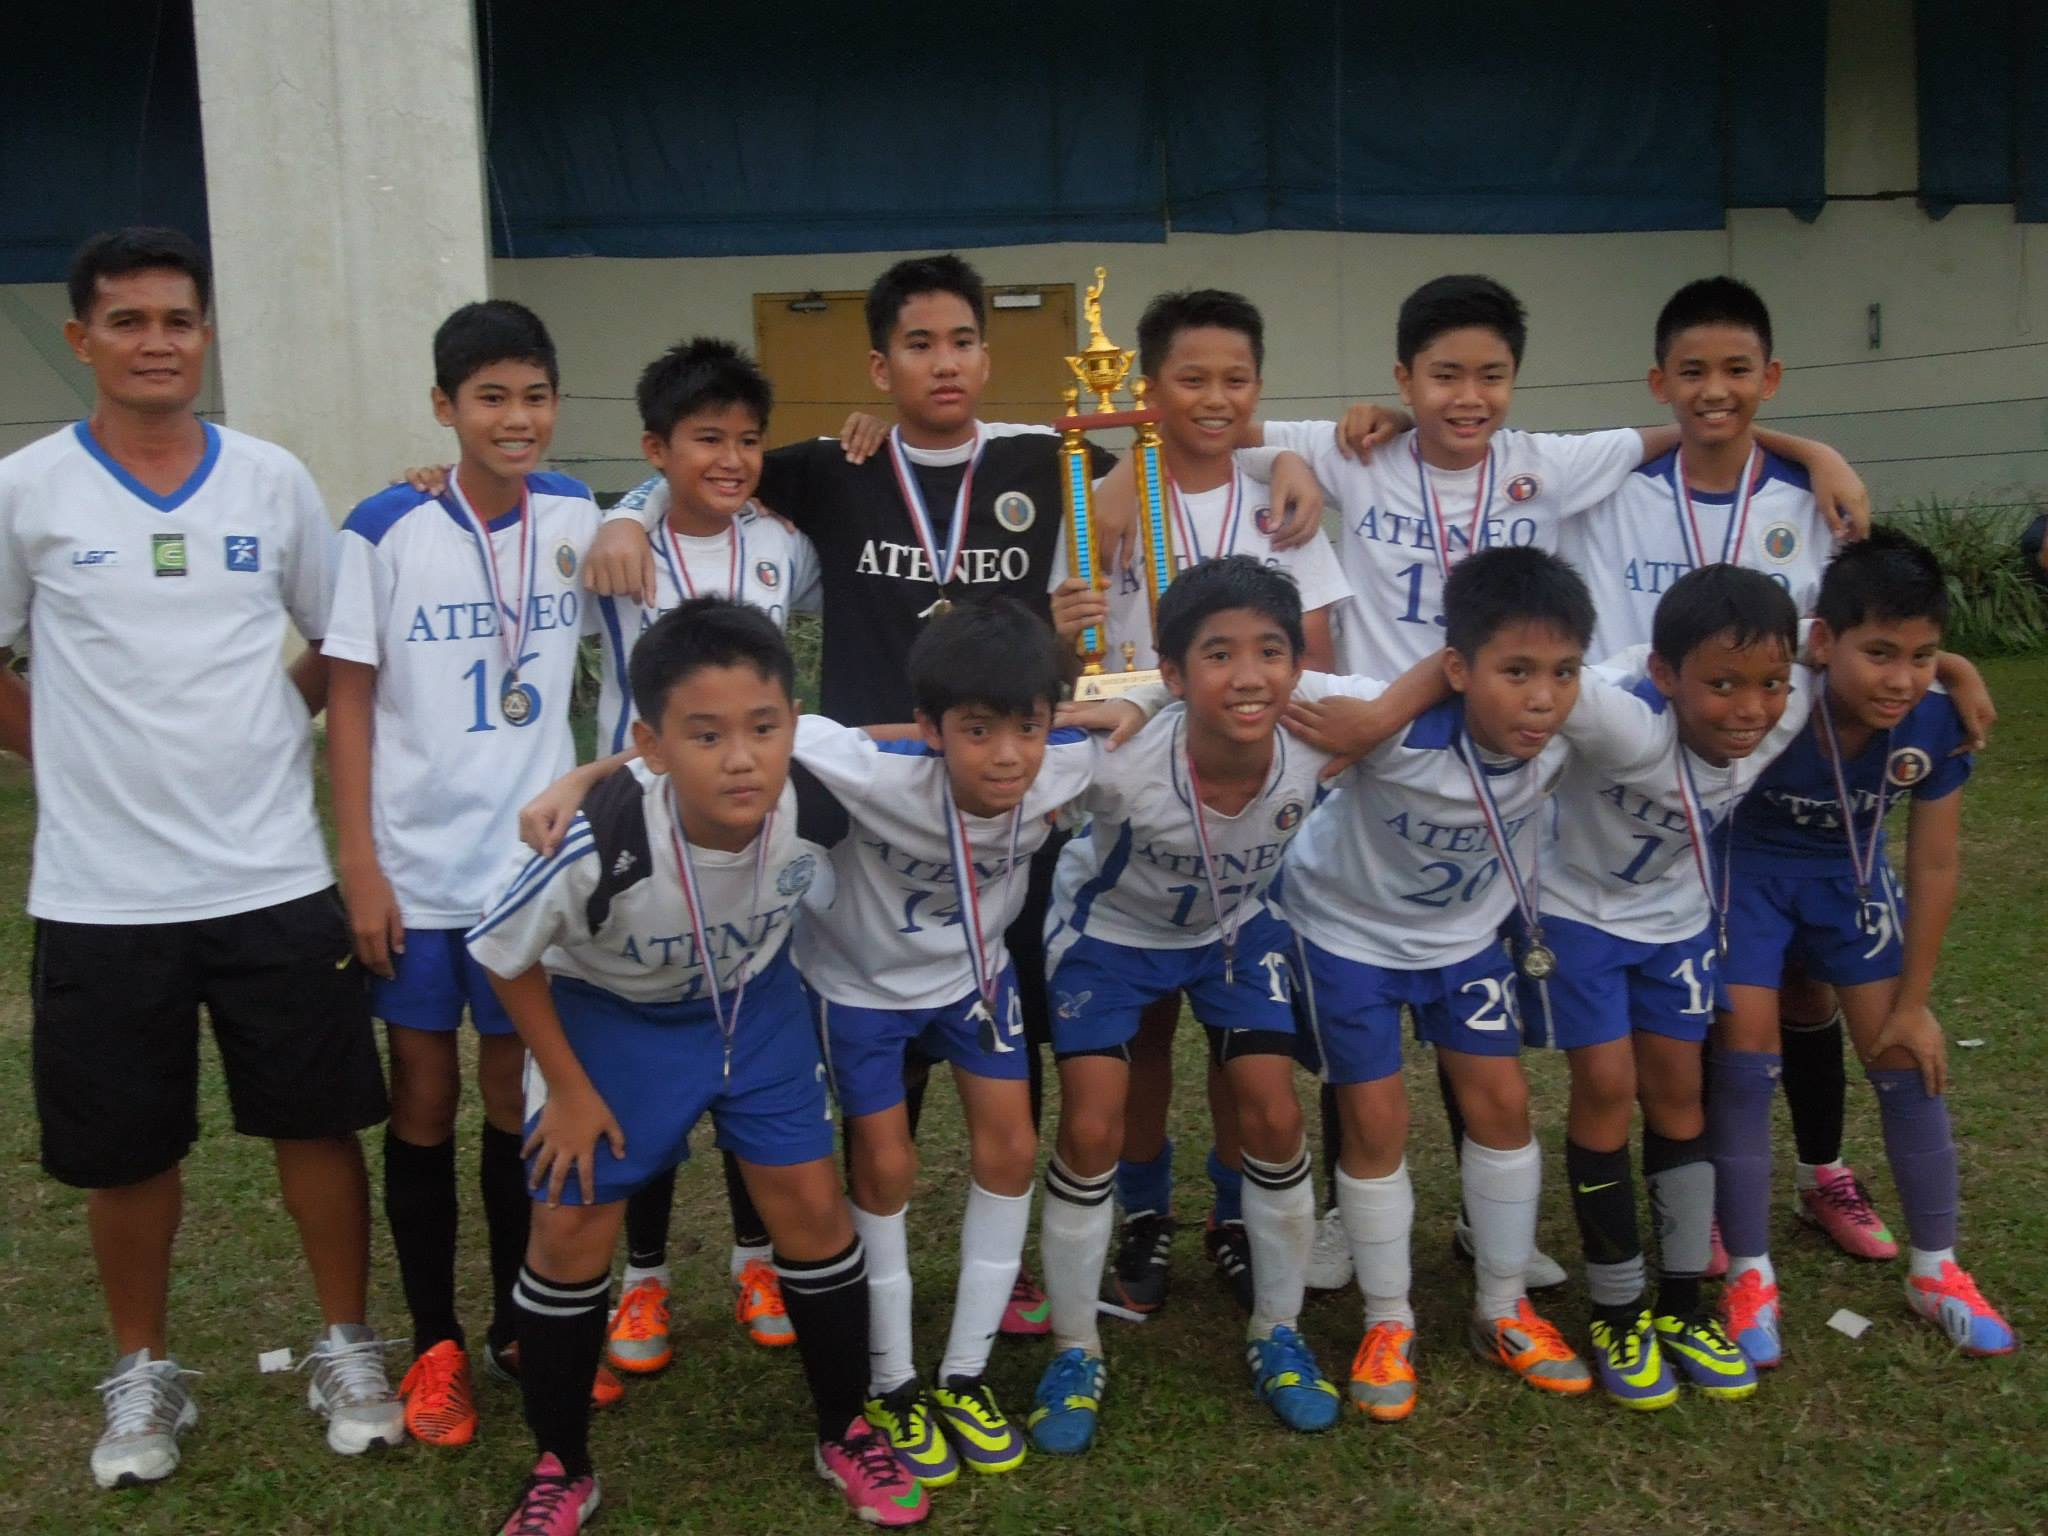 Ateneo football team with Miggy medal